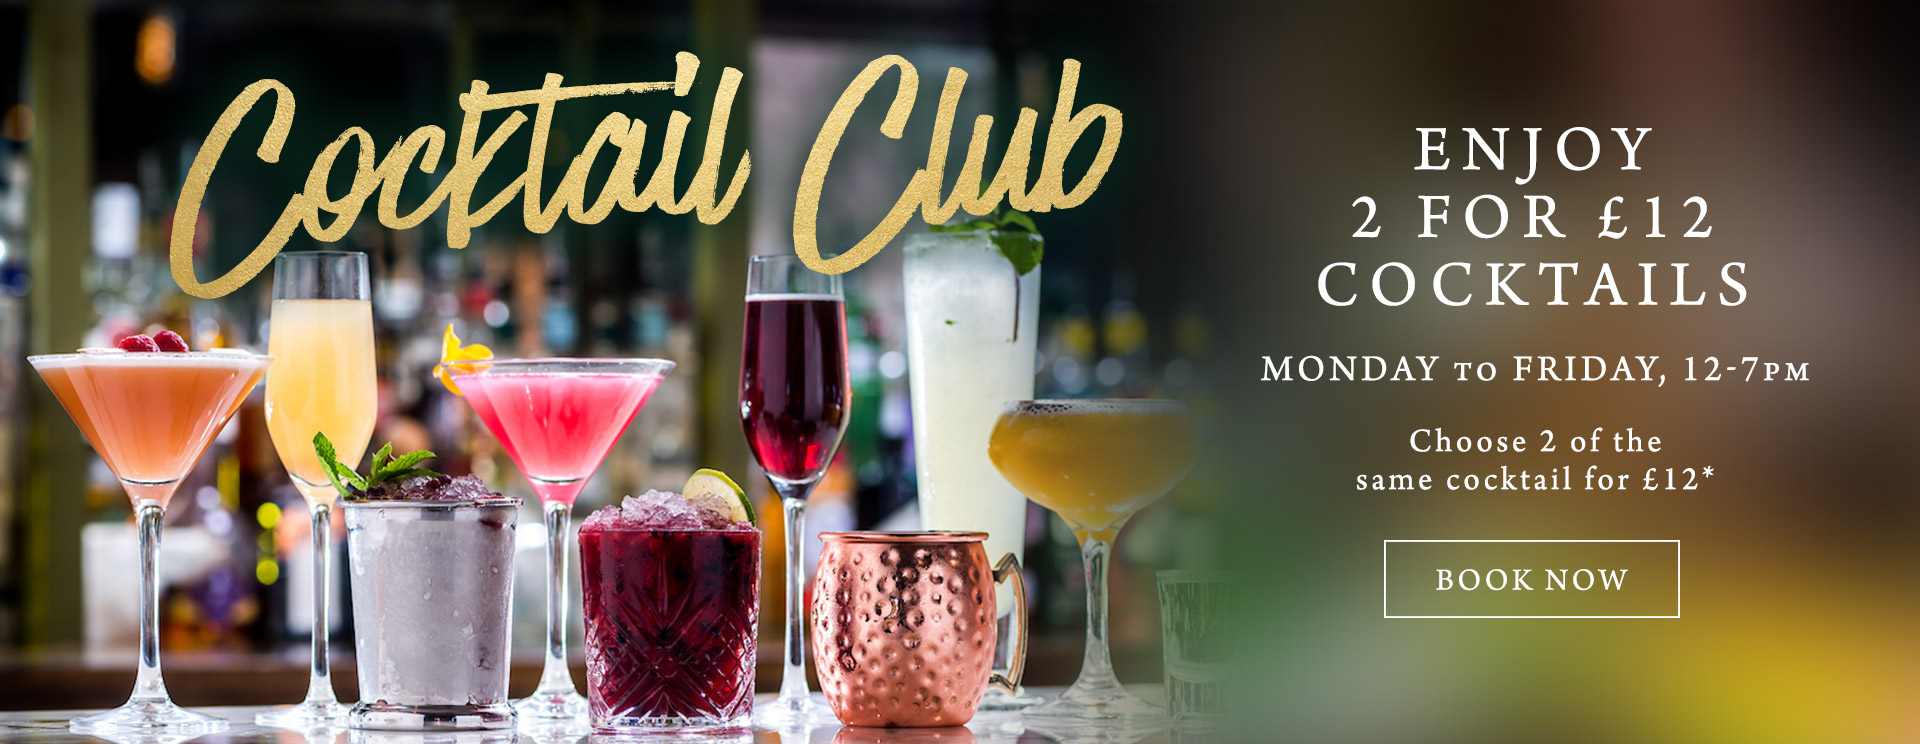 2 for £12 cocktails at The Red Lion